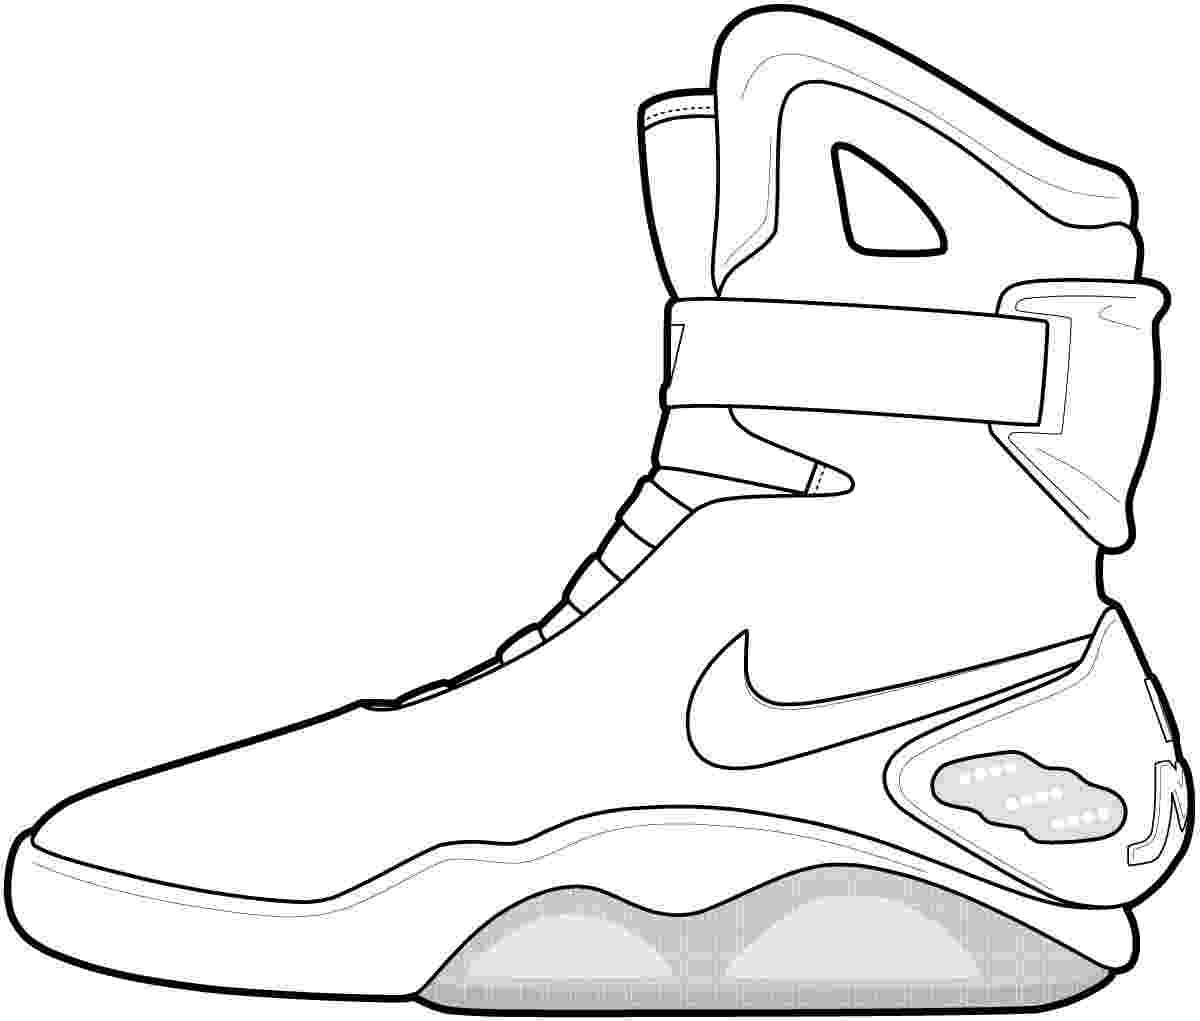 basketball shoe coloring page basketball shoe coloring pages download and print for free coloring basketball shoe page